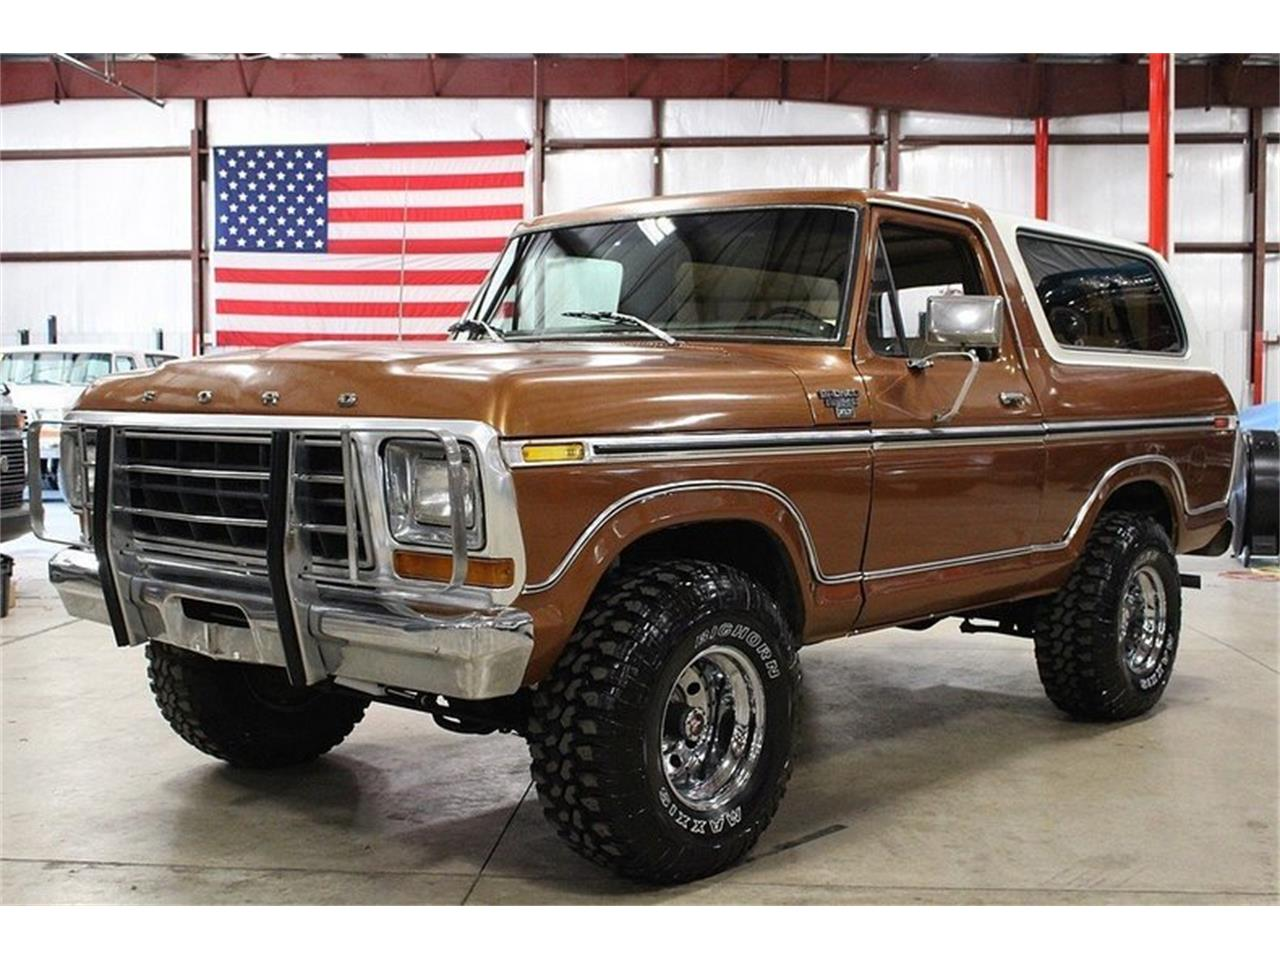 Large picture of 78 bronco nd0l